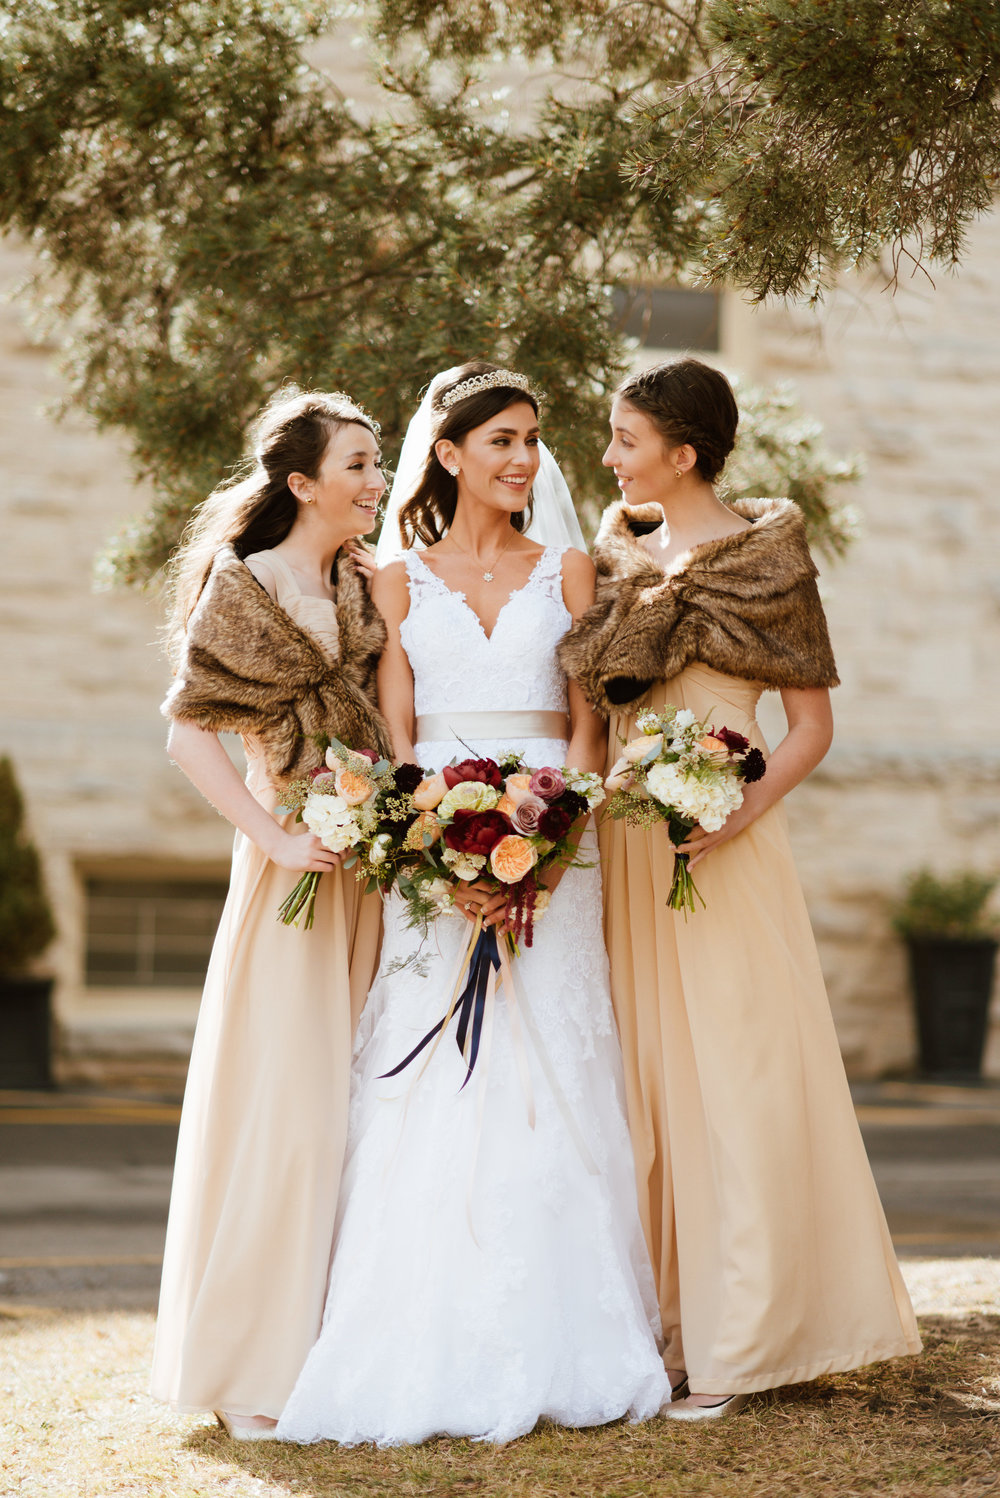 Flowers by Lace and Lilies, winter wedding, burgundy and peach bouquets, fur bridesmaids